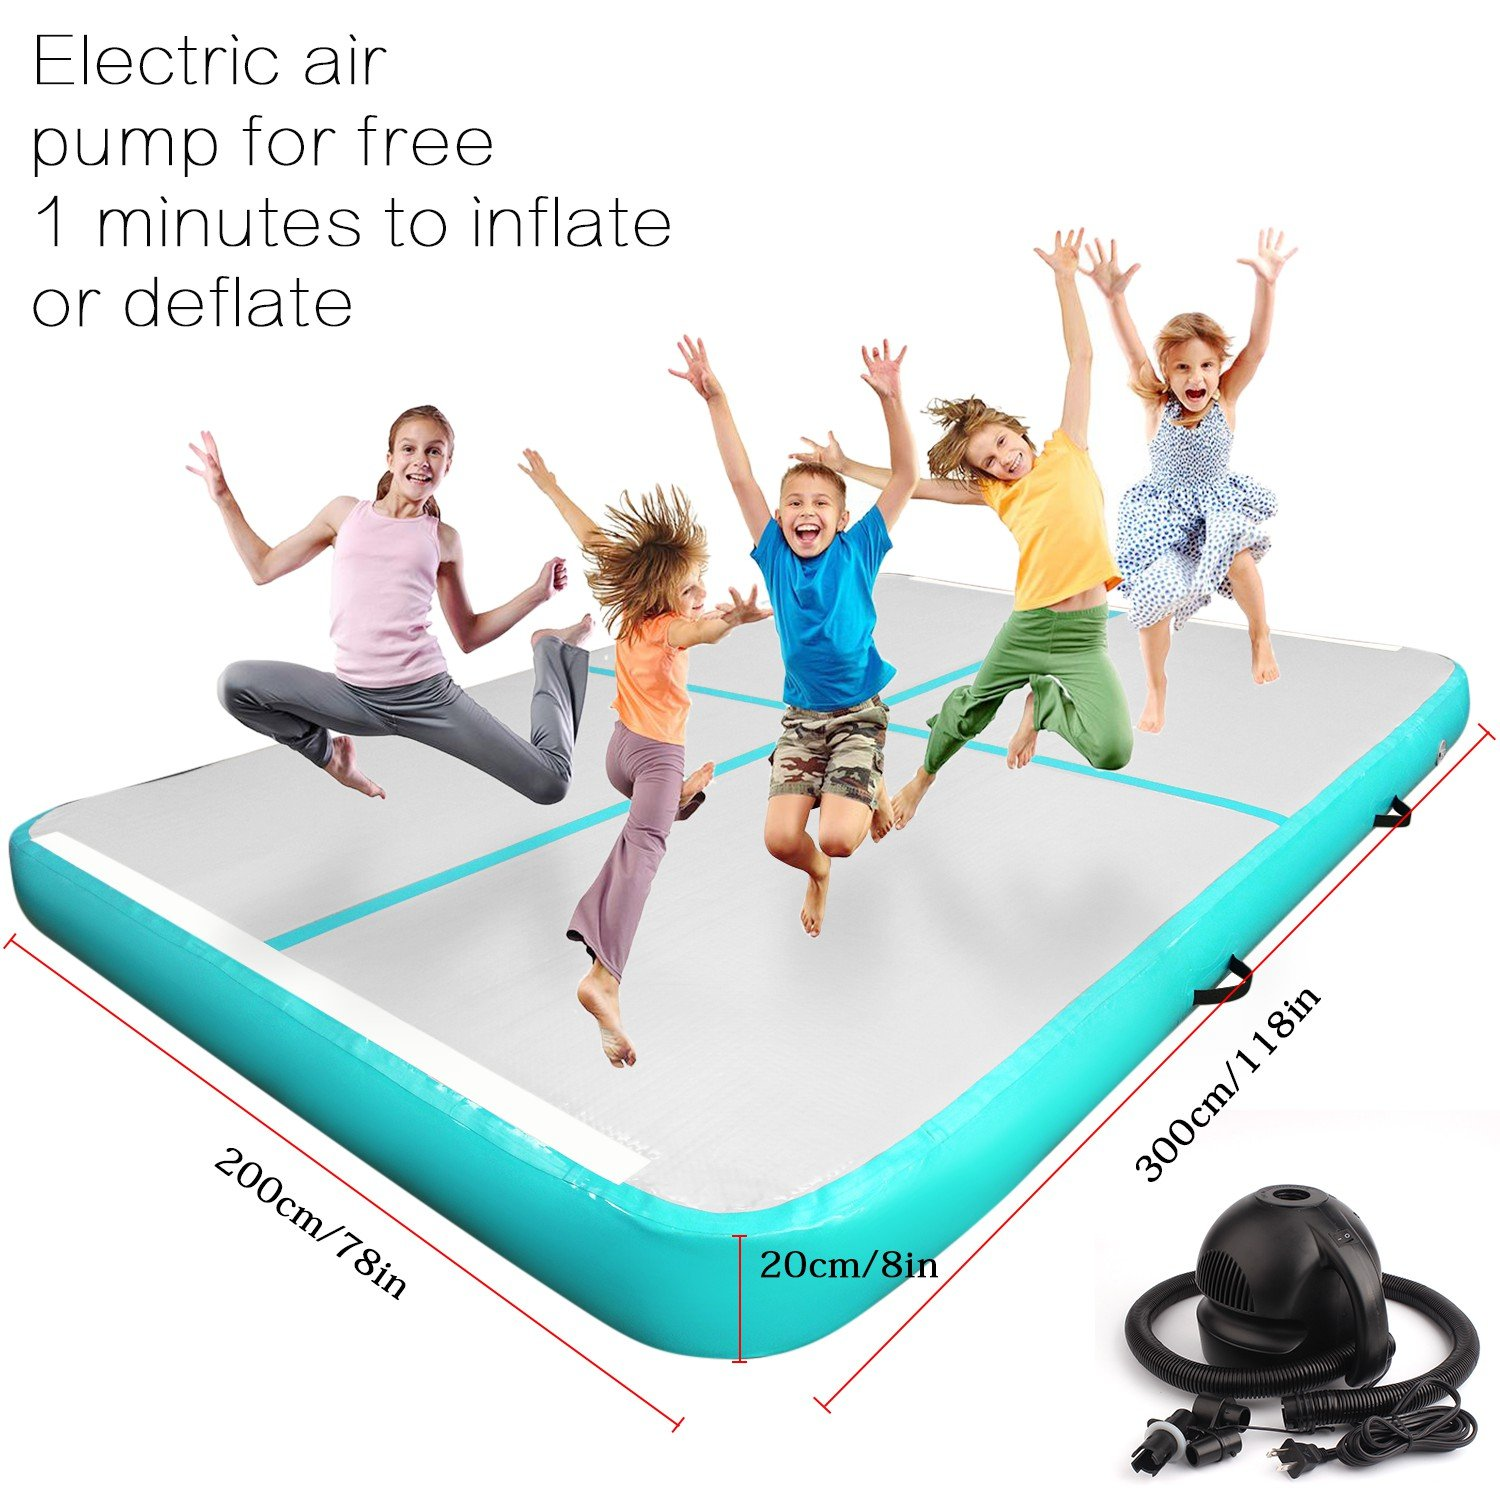 FBSPORT Super Large Airtrack Gymnastic Tumbling Mat Inflatable Air Floor Mat Exercise Mat with Free Electrical Pump for Home Use/Beach/Park/Gym Fitness/Yoga on Water